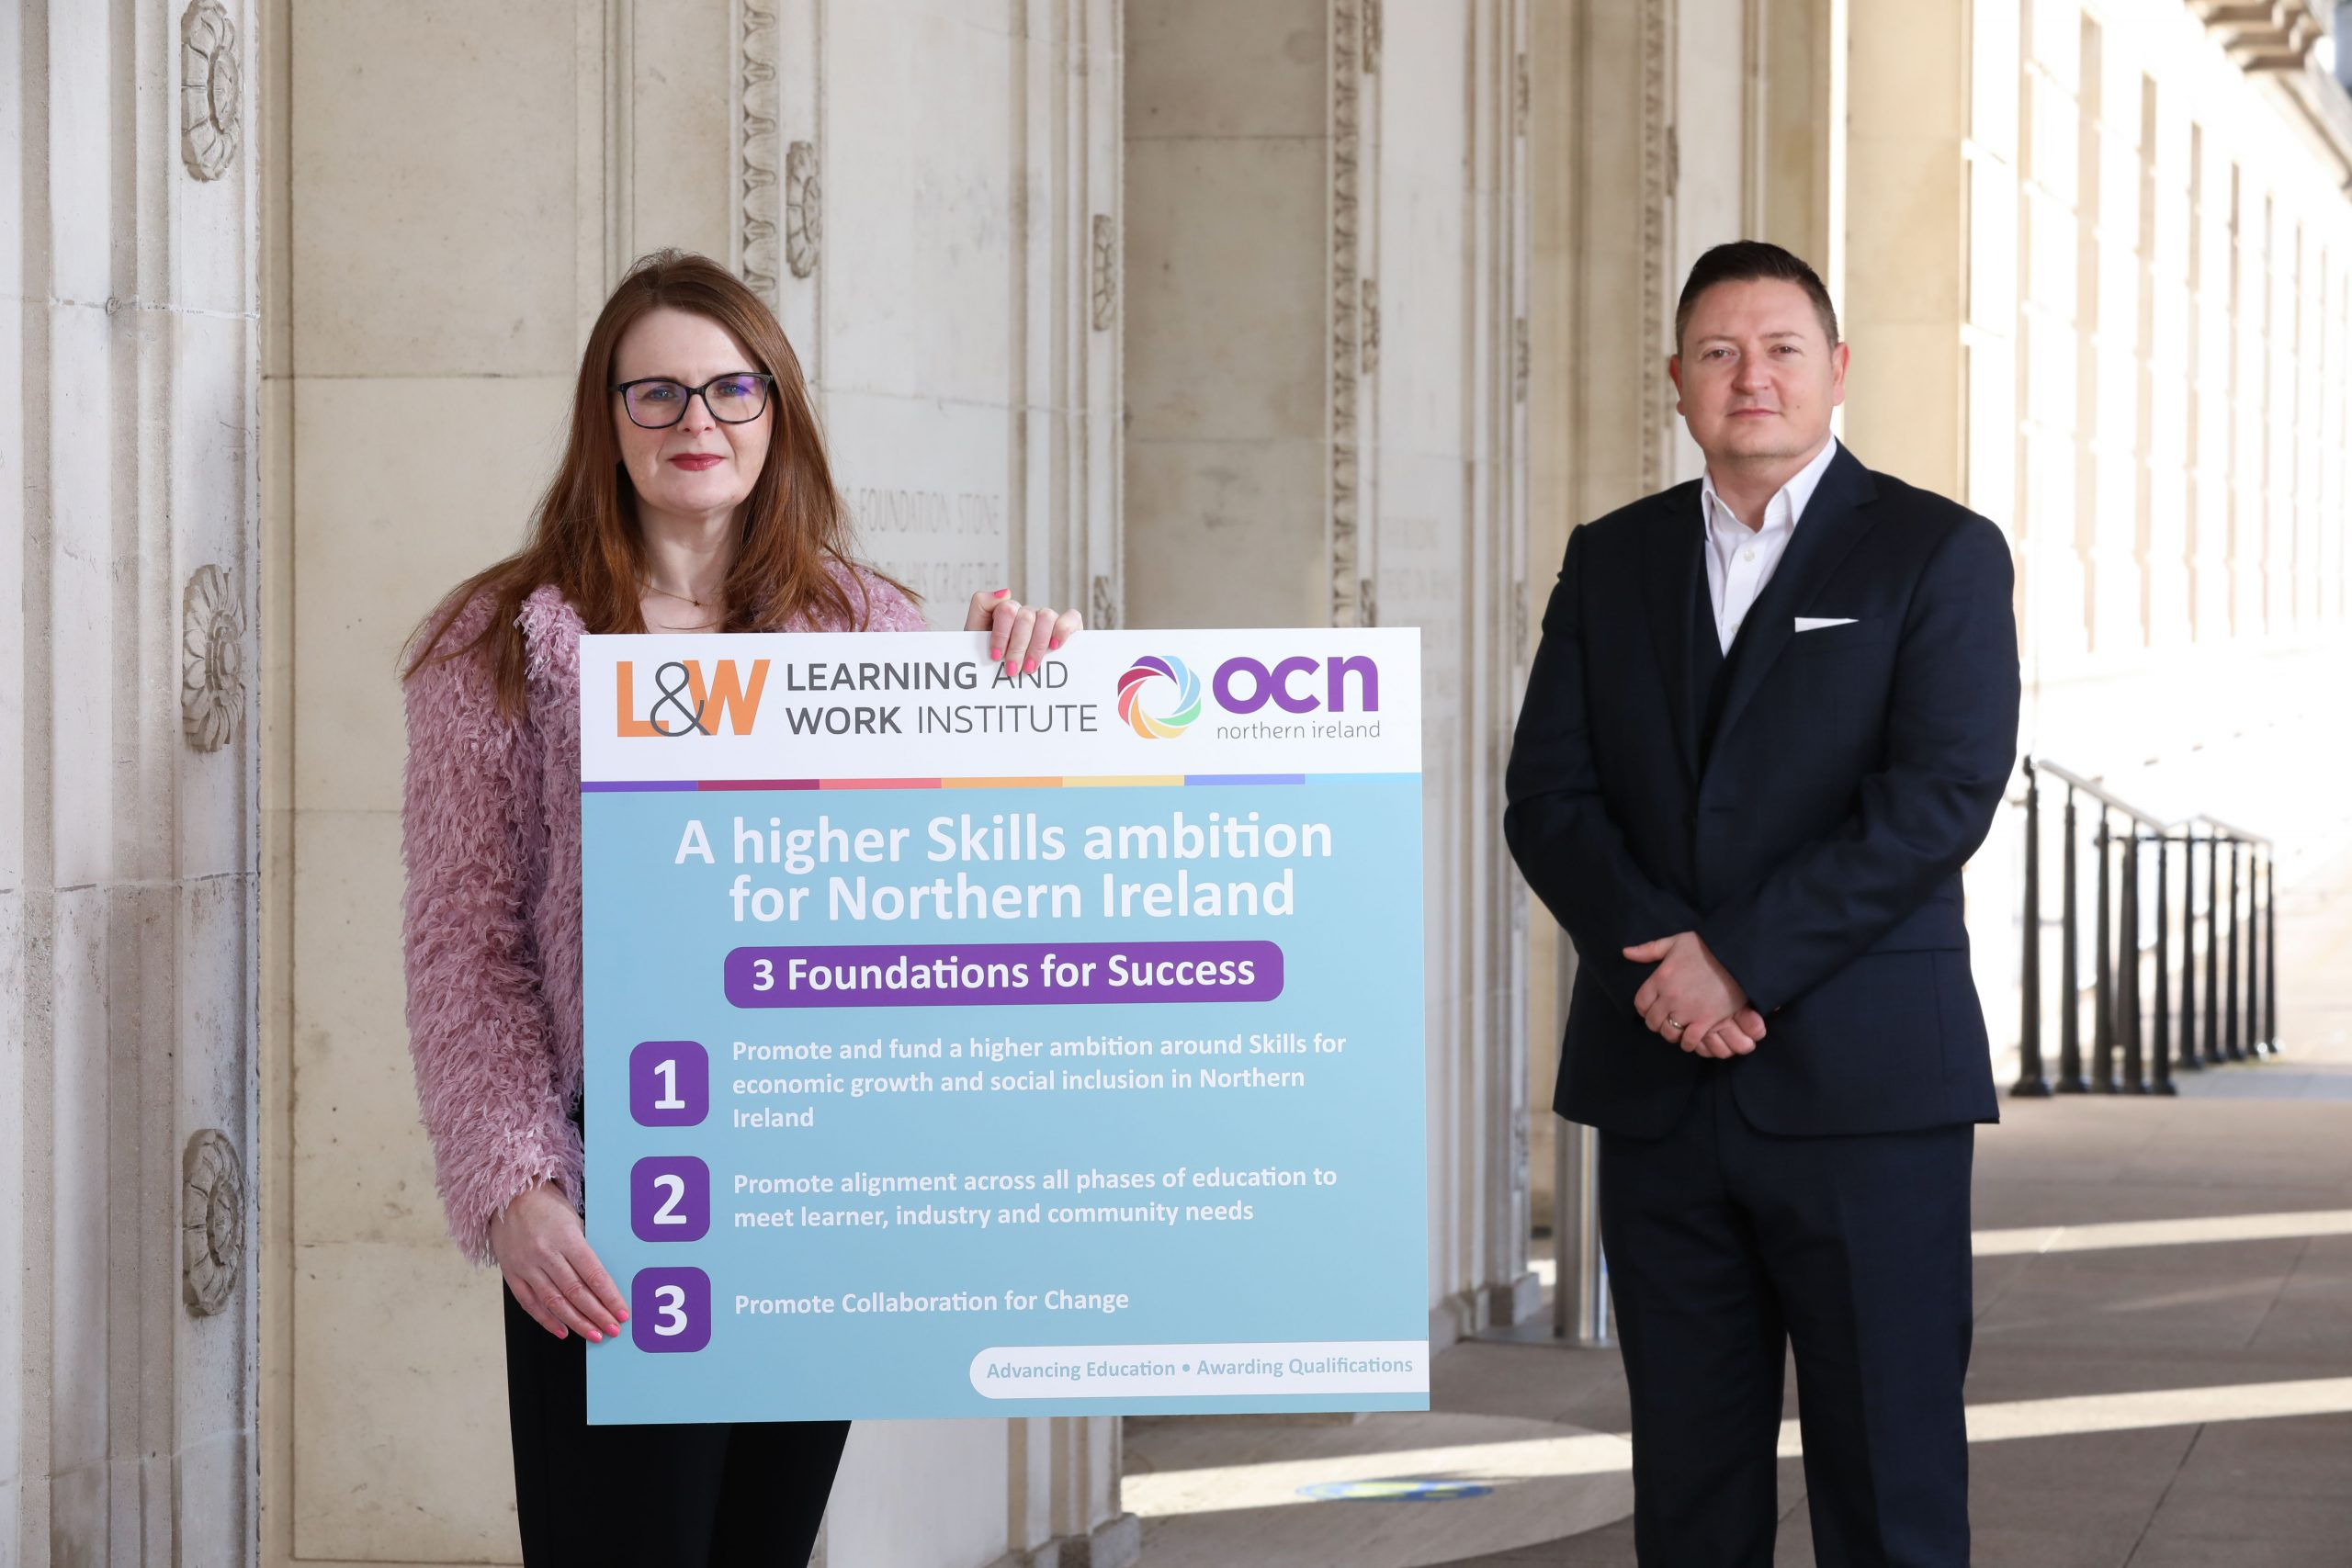 Caoimhe Archibald, Chair Committee for the Economy and Martin Flynn, CEO OCN NI